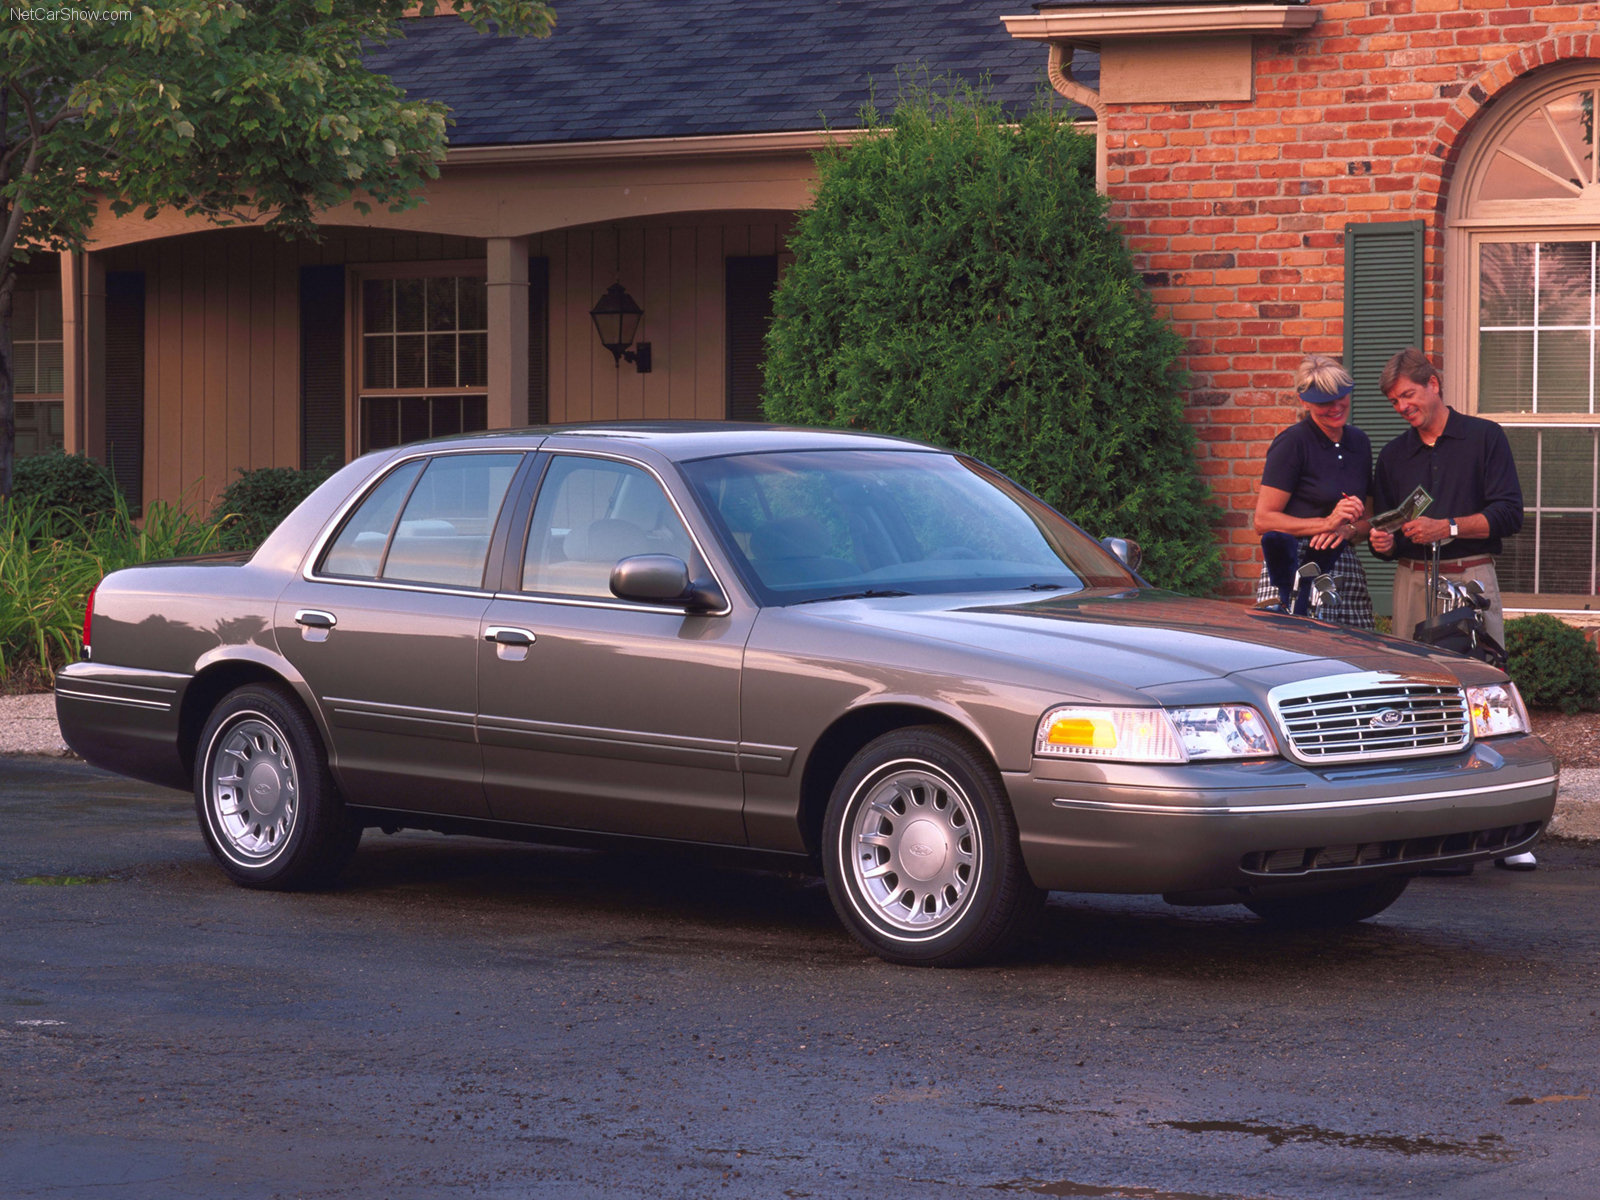 2001 ford crown victoria size 479 kb resolution 1600x1200 type link file src